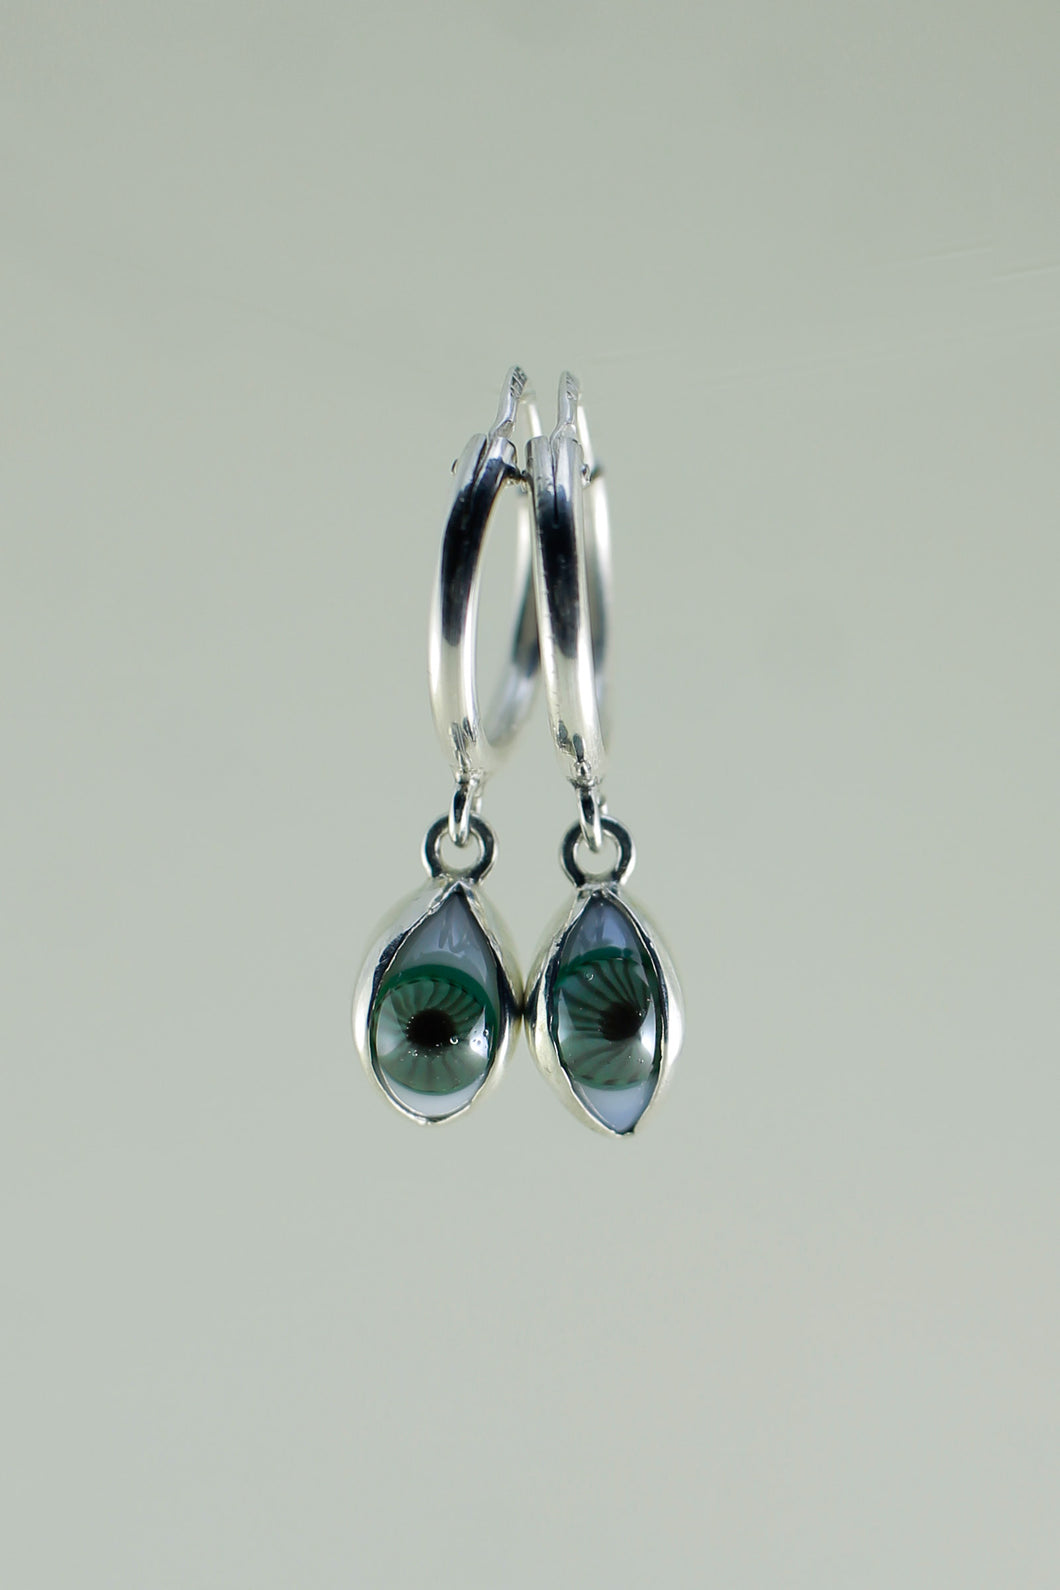 MINI SILVER HOOPS WITH EYES